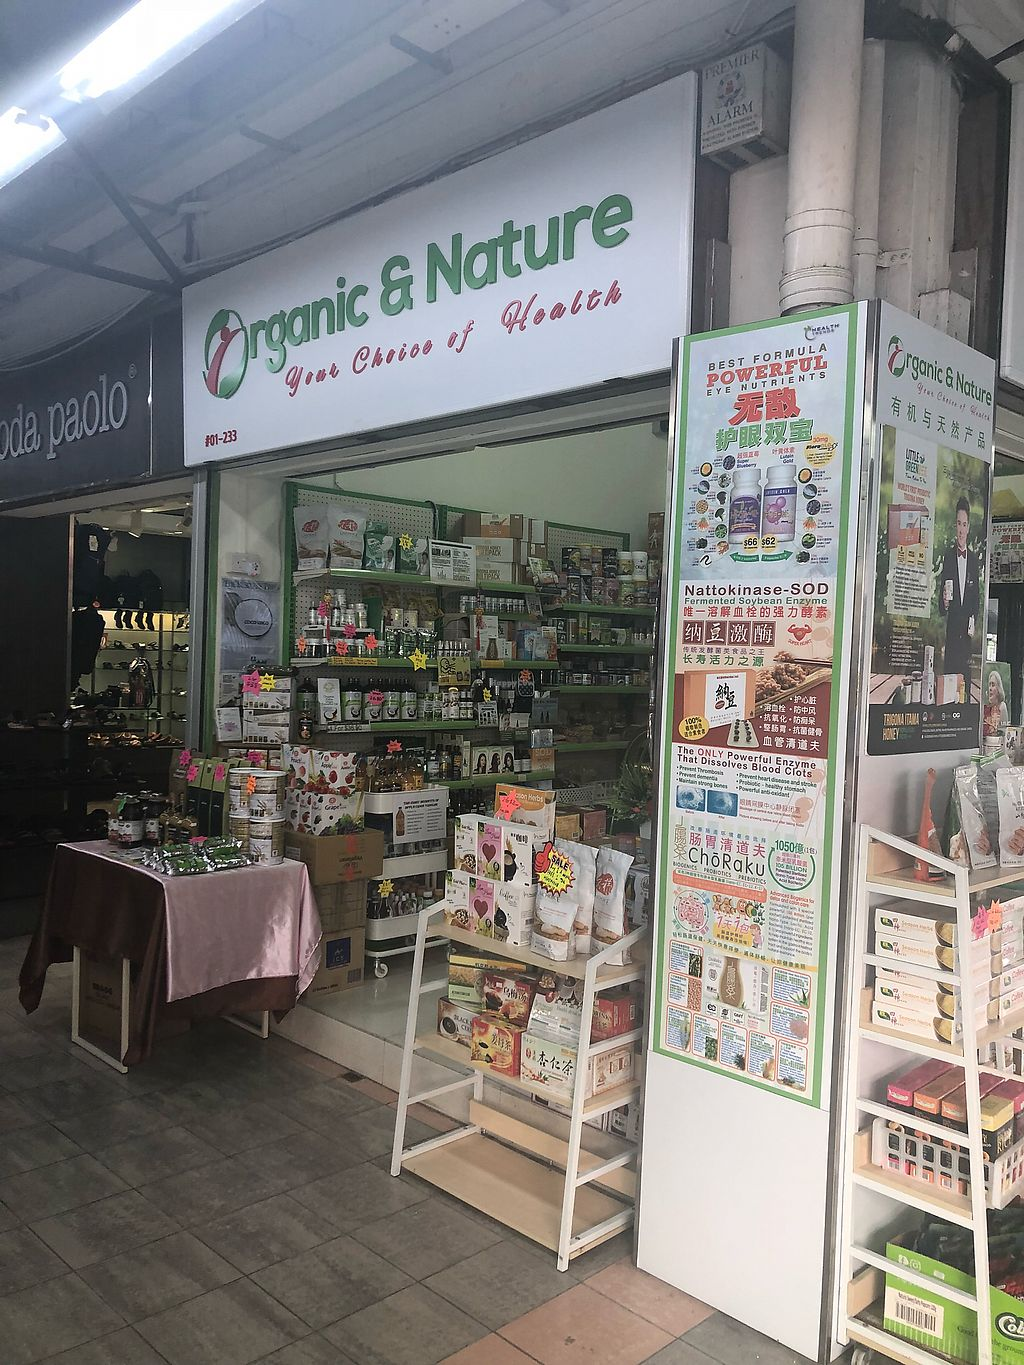 """Photo of Organic and Nature Chain  by <a href=""""/members/profile/AmyLeySzeThoo"""">AmyLeySzeThoo</a> <br/>Shop front (another side) <br/> March 22, 2018  - <a href='/contact/abuse/image/114625/374319'>Report</a>"""